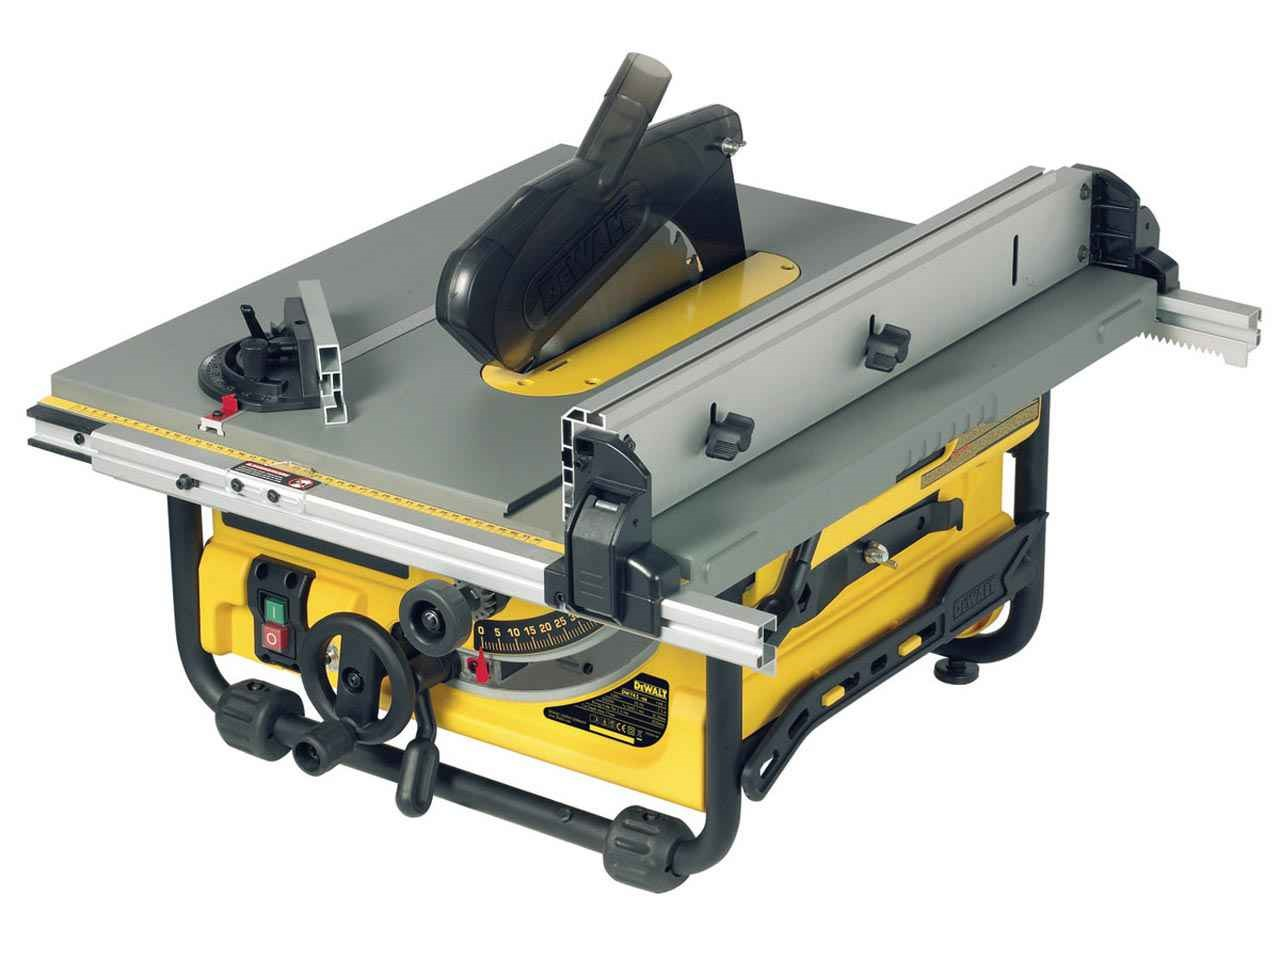 Dewalt dw745 230v portable site table saw greentooth Images